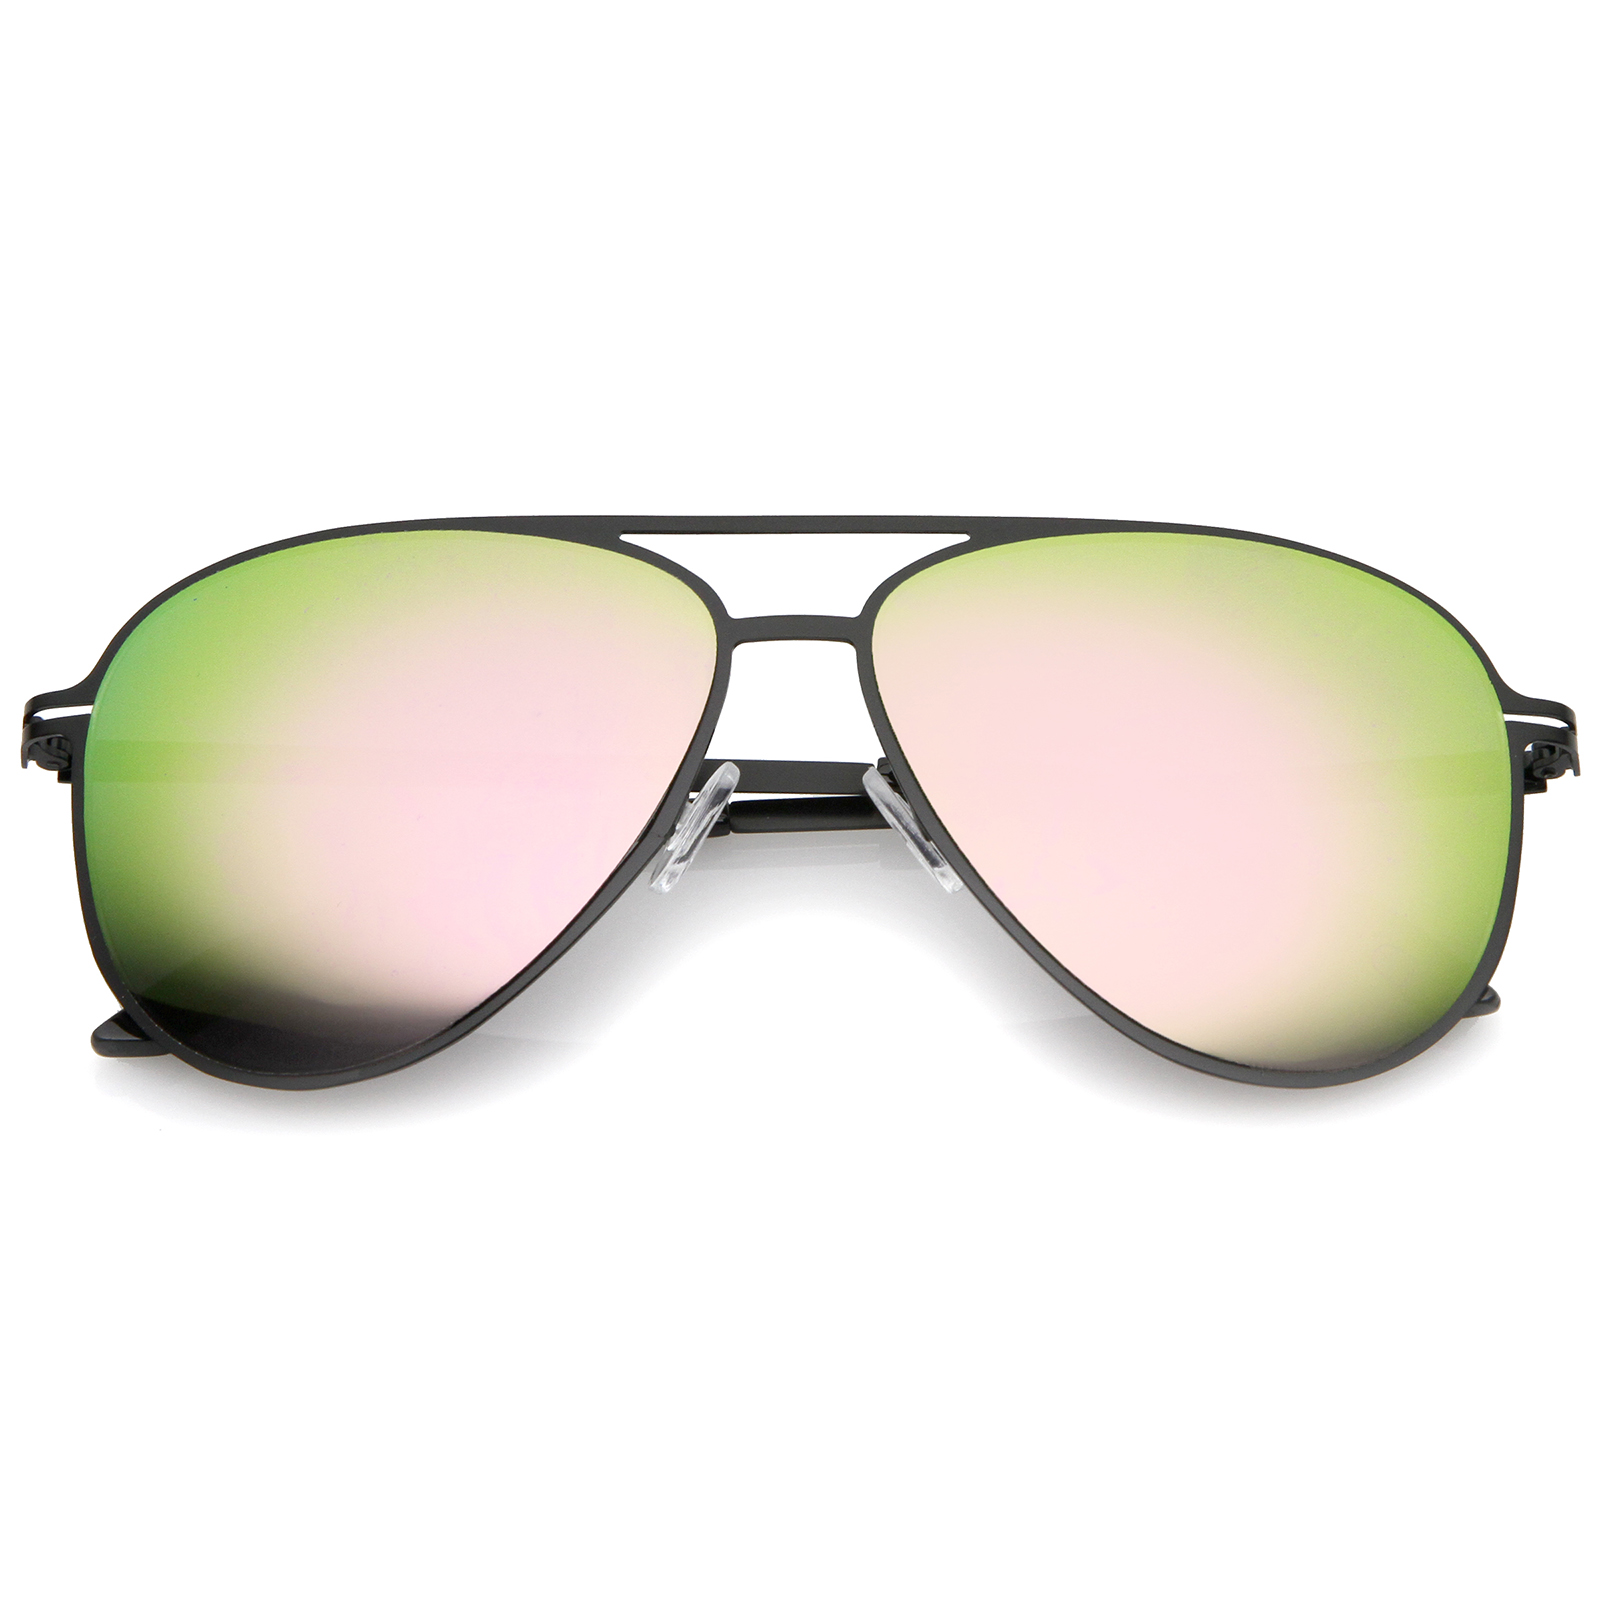 8b0715b31dd sunglassLA - Modern Thin Frame Brow Bar Colored Mirror Lens Aviator  Sunglasses 58mm - 58mm - Walmart.com